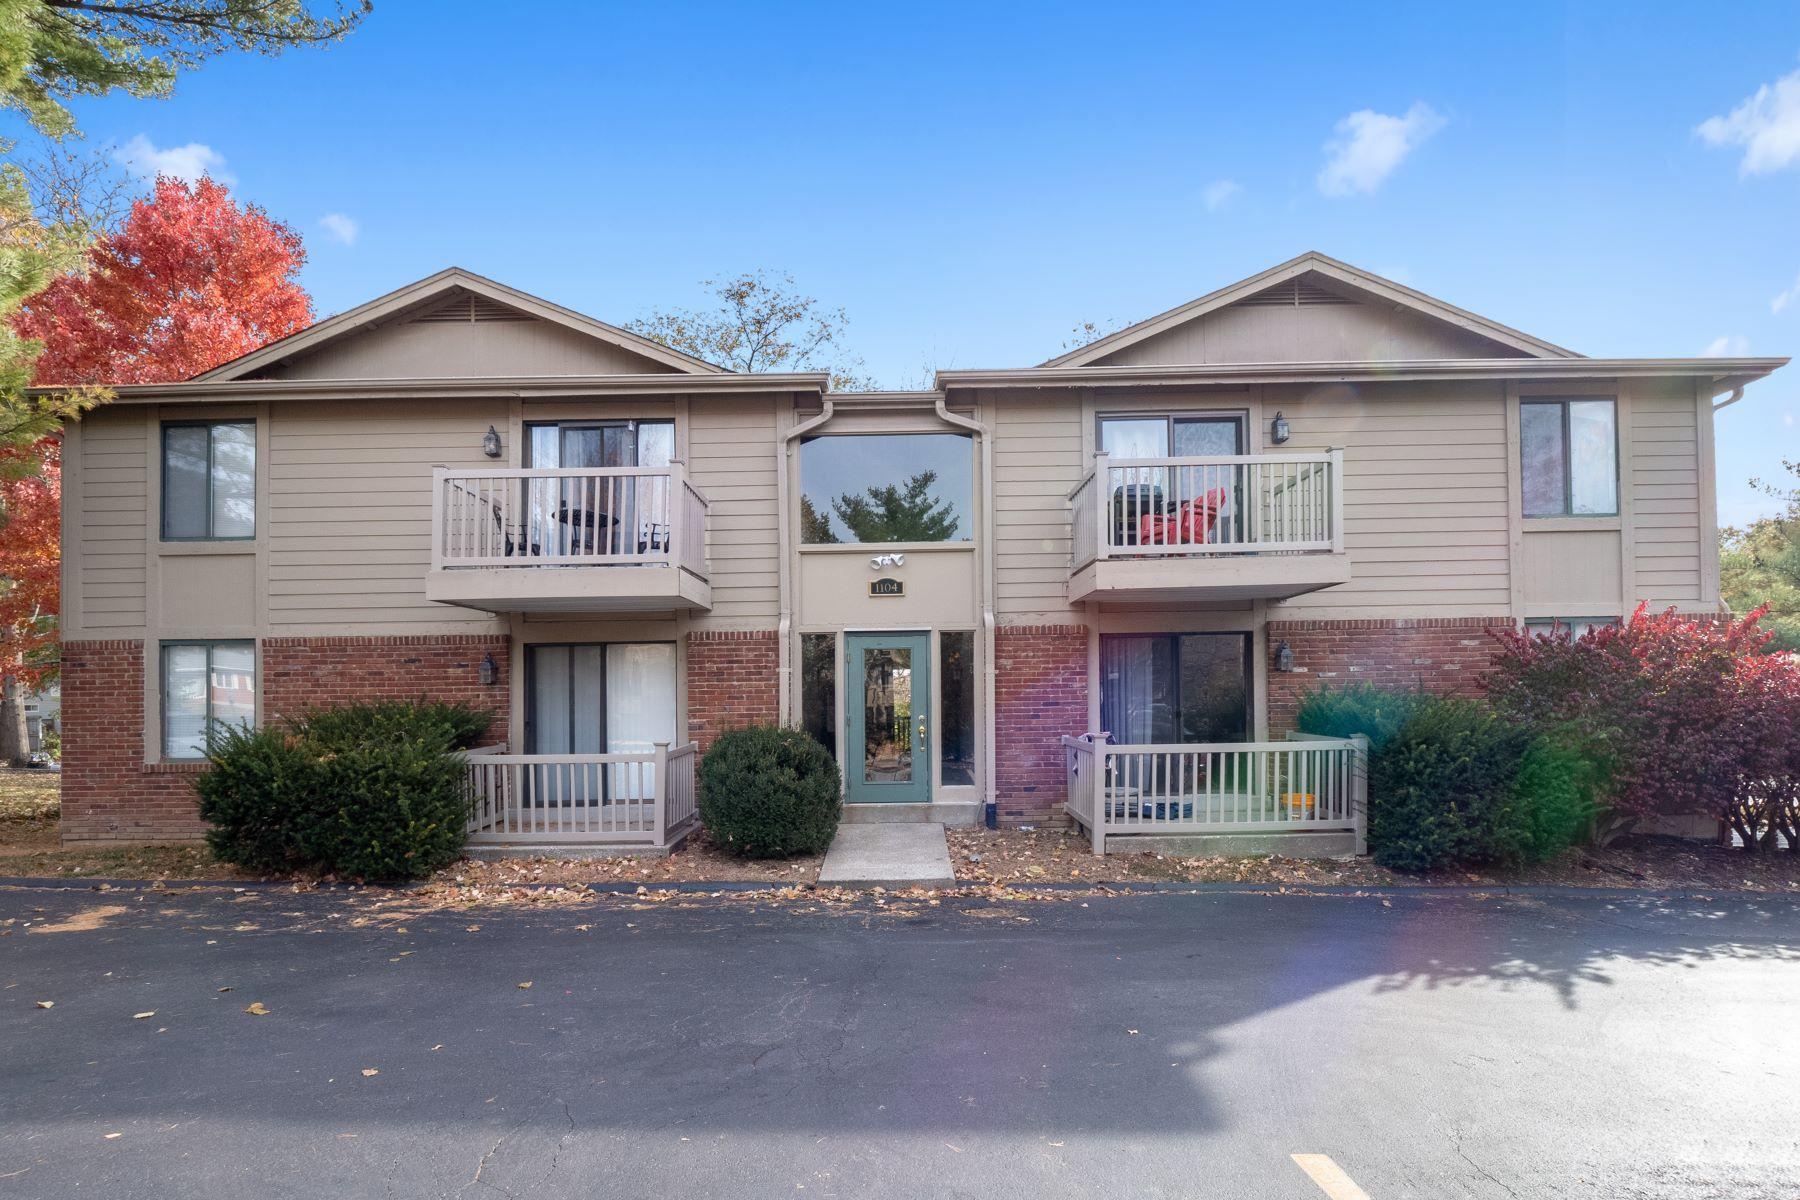 Condominiums for Sale at Charming Kirkwood Condo! 1104 Mariedale Court #A Kirkwood, Missouri 63122 United States